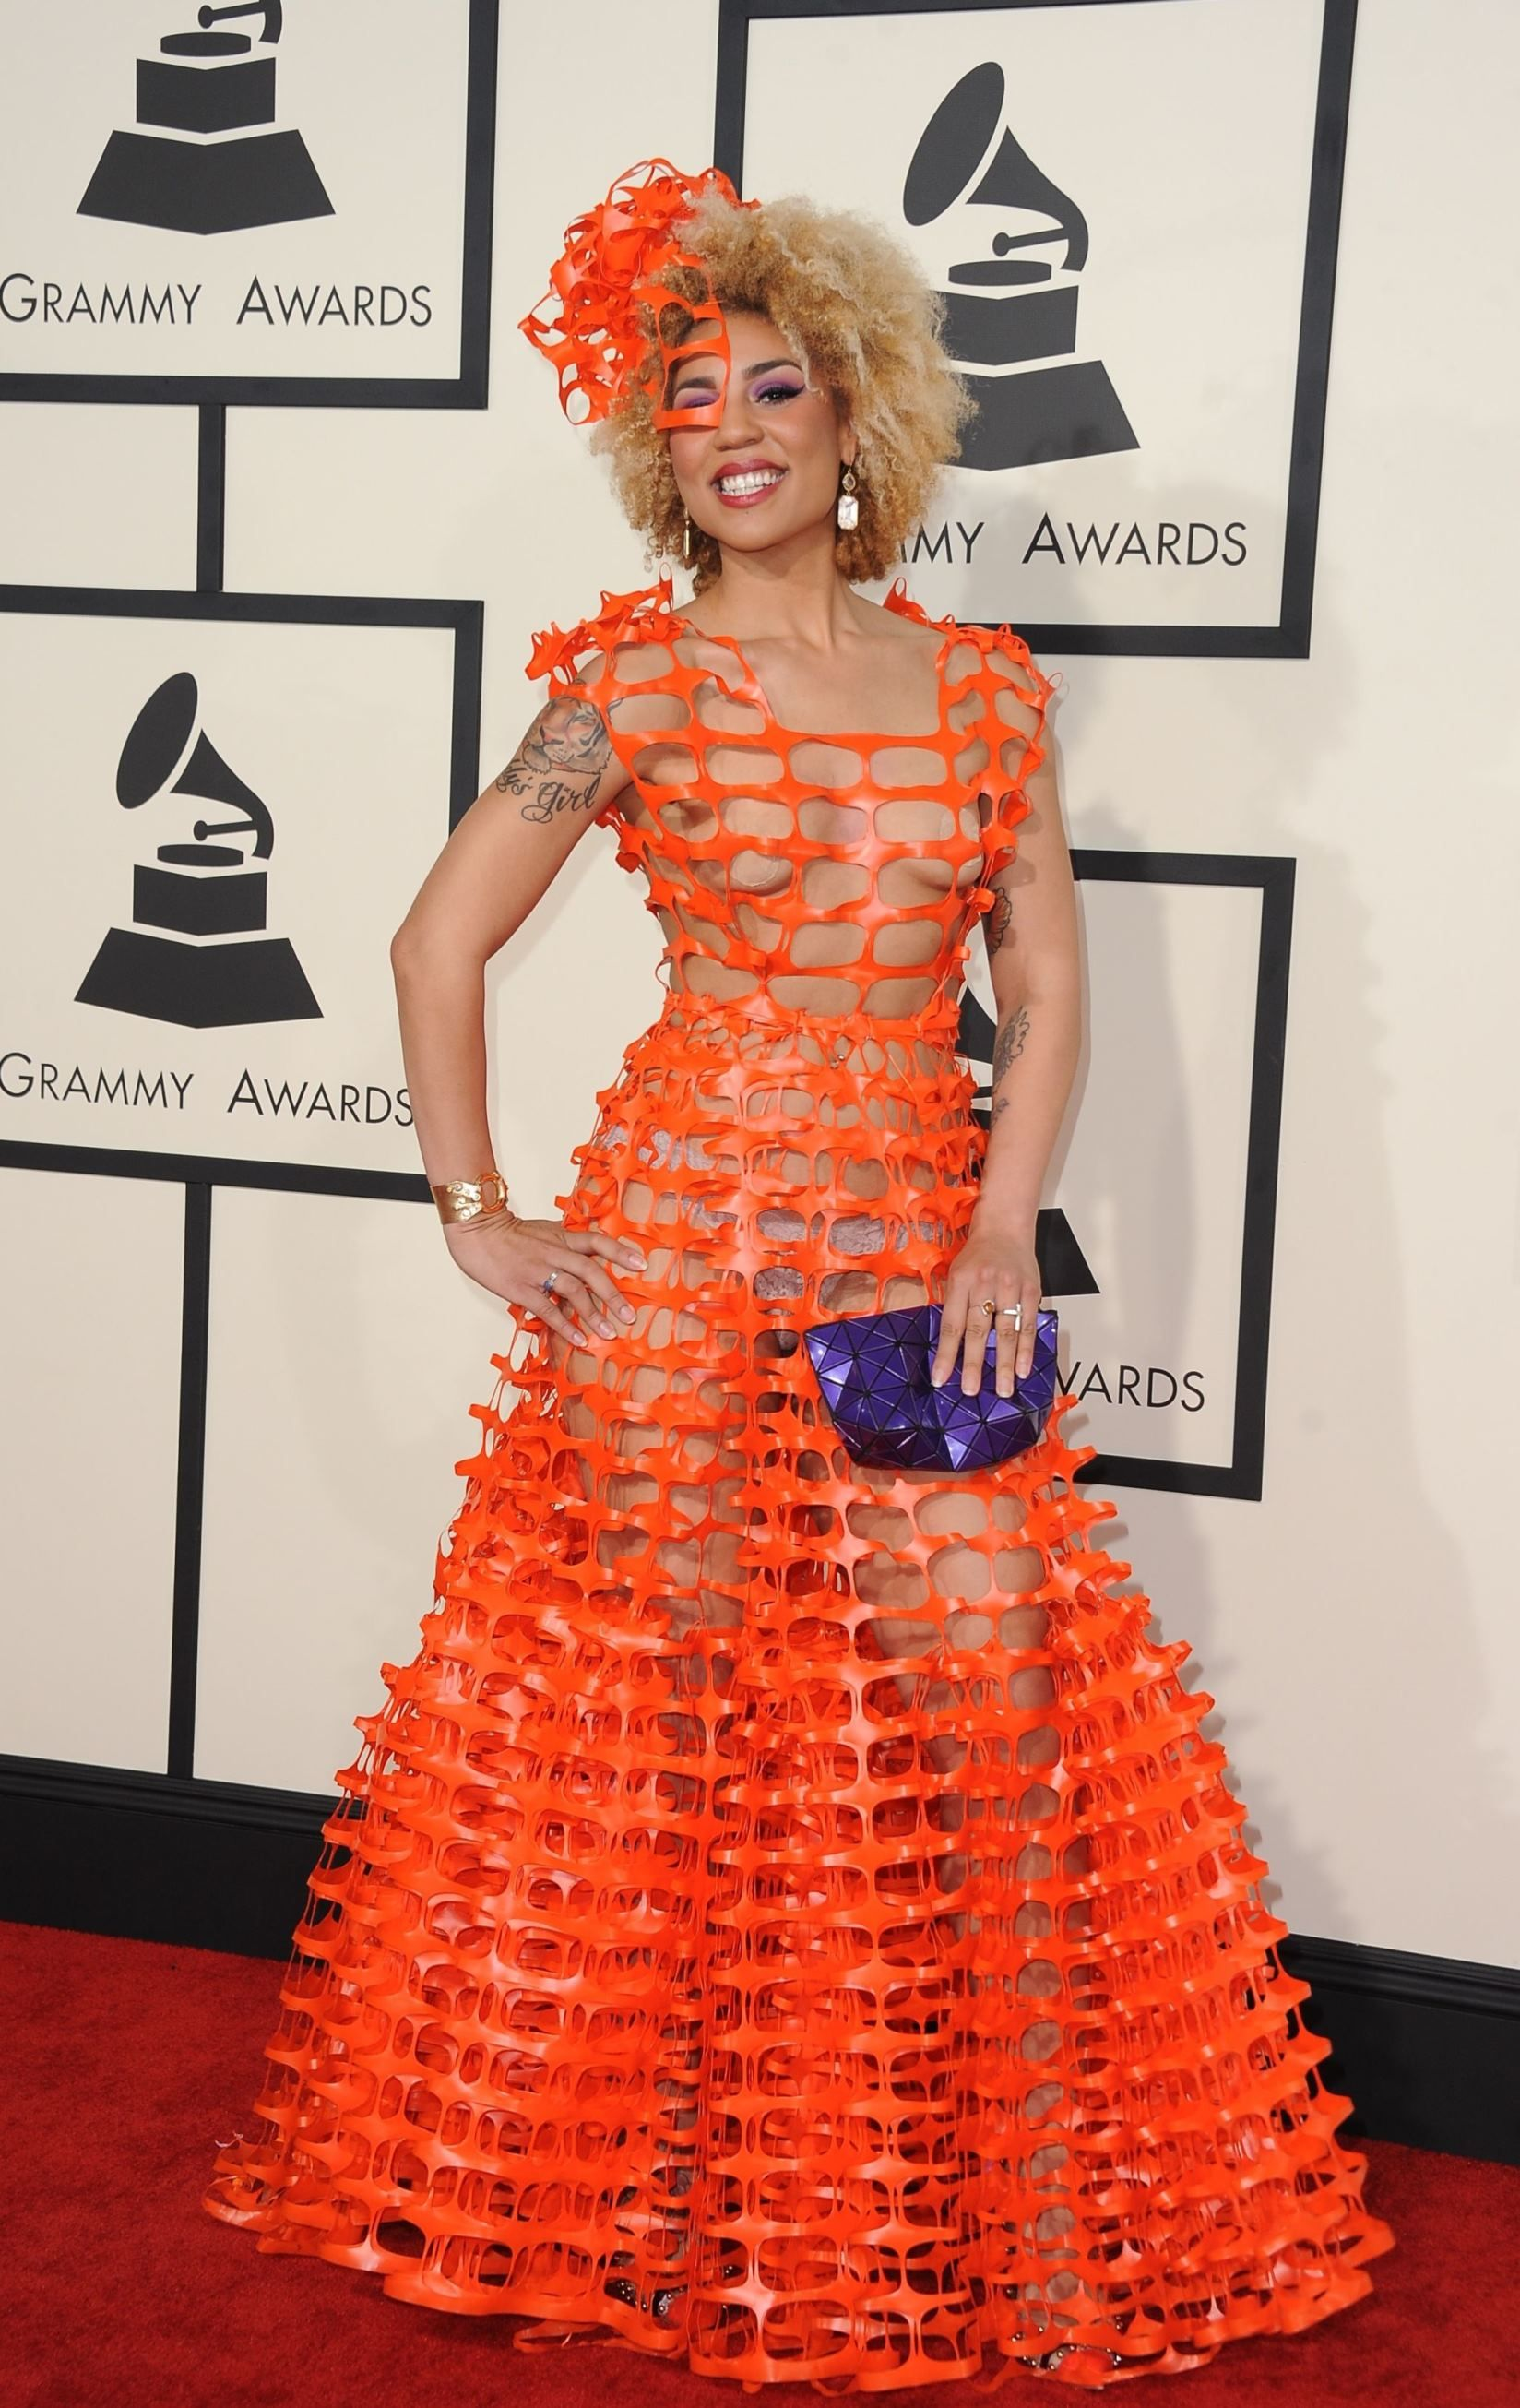 Crazy See Through Dress at the 2015 Grammy Awards